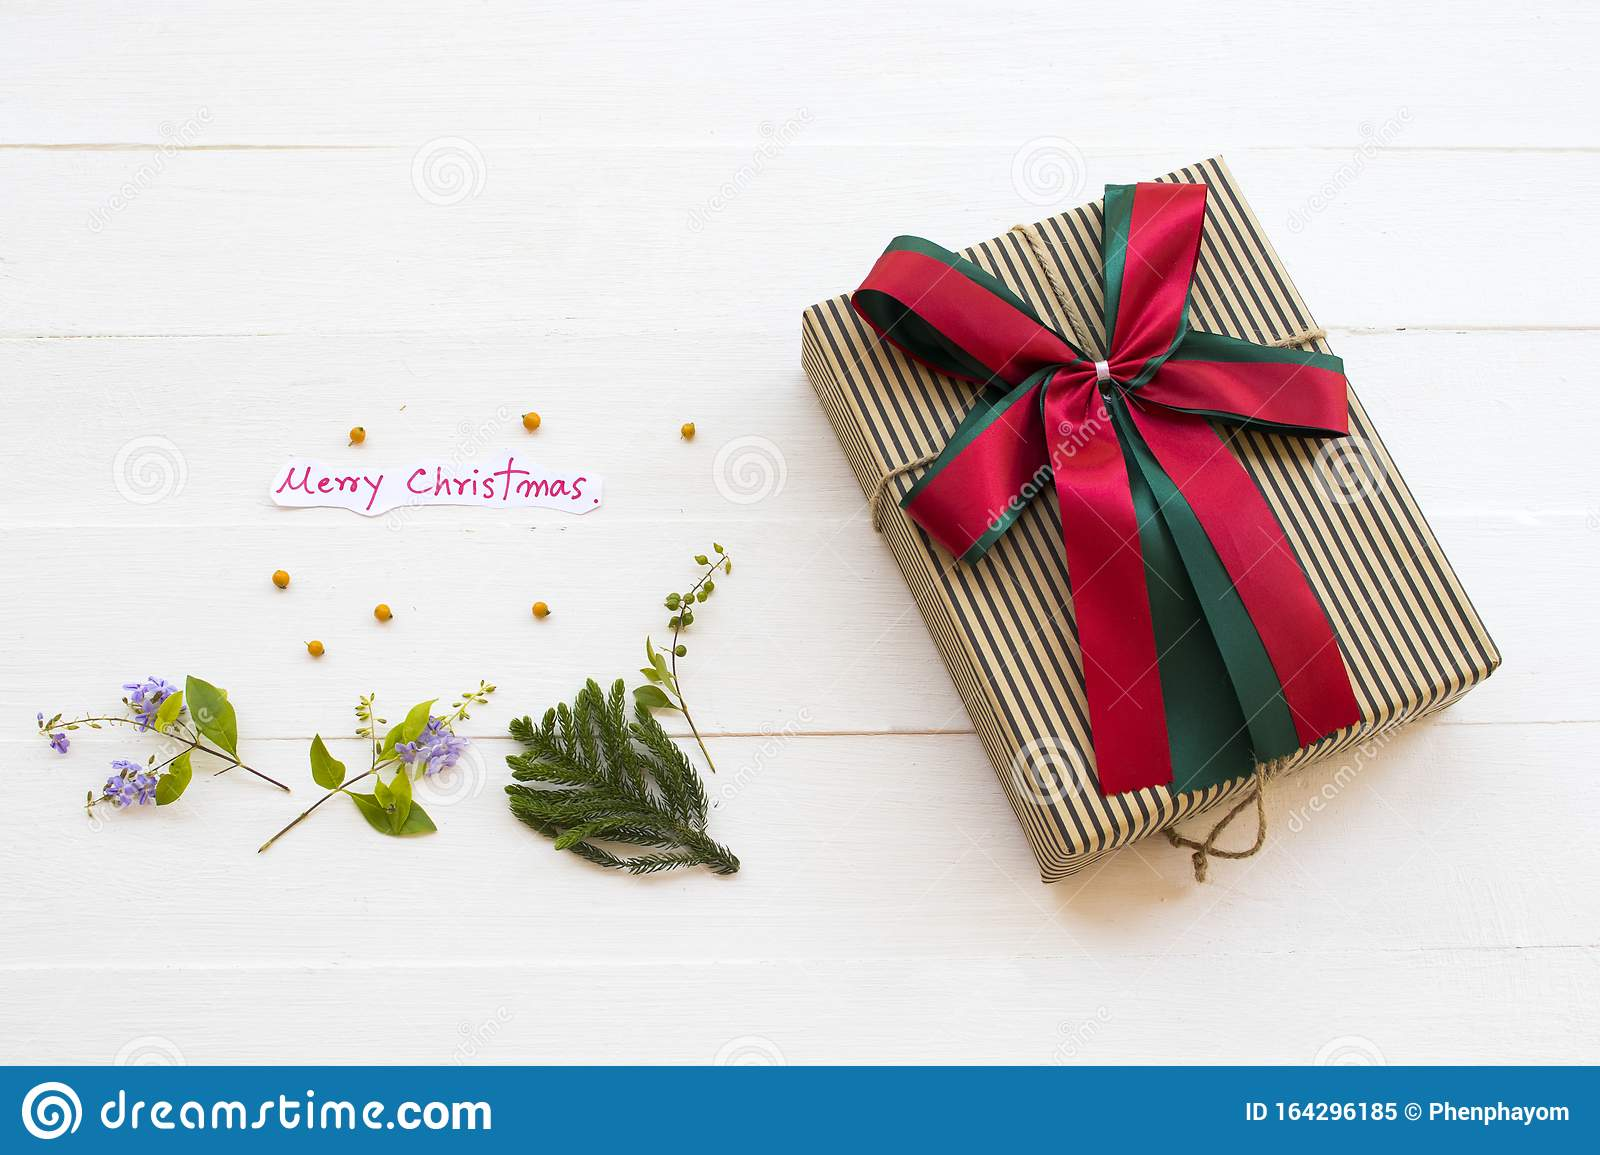 Merry Christmas Message Card Handwriting With T Box For